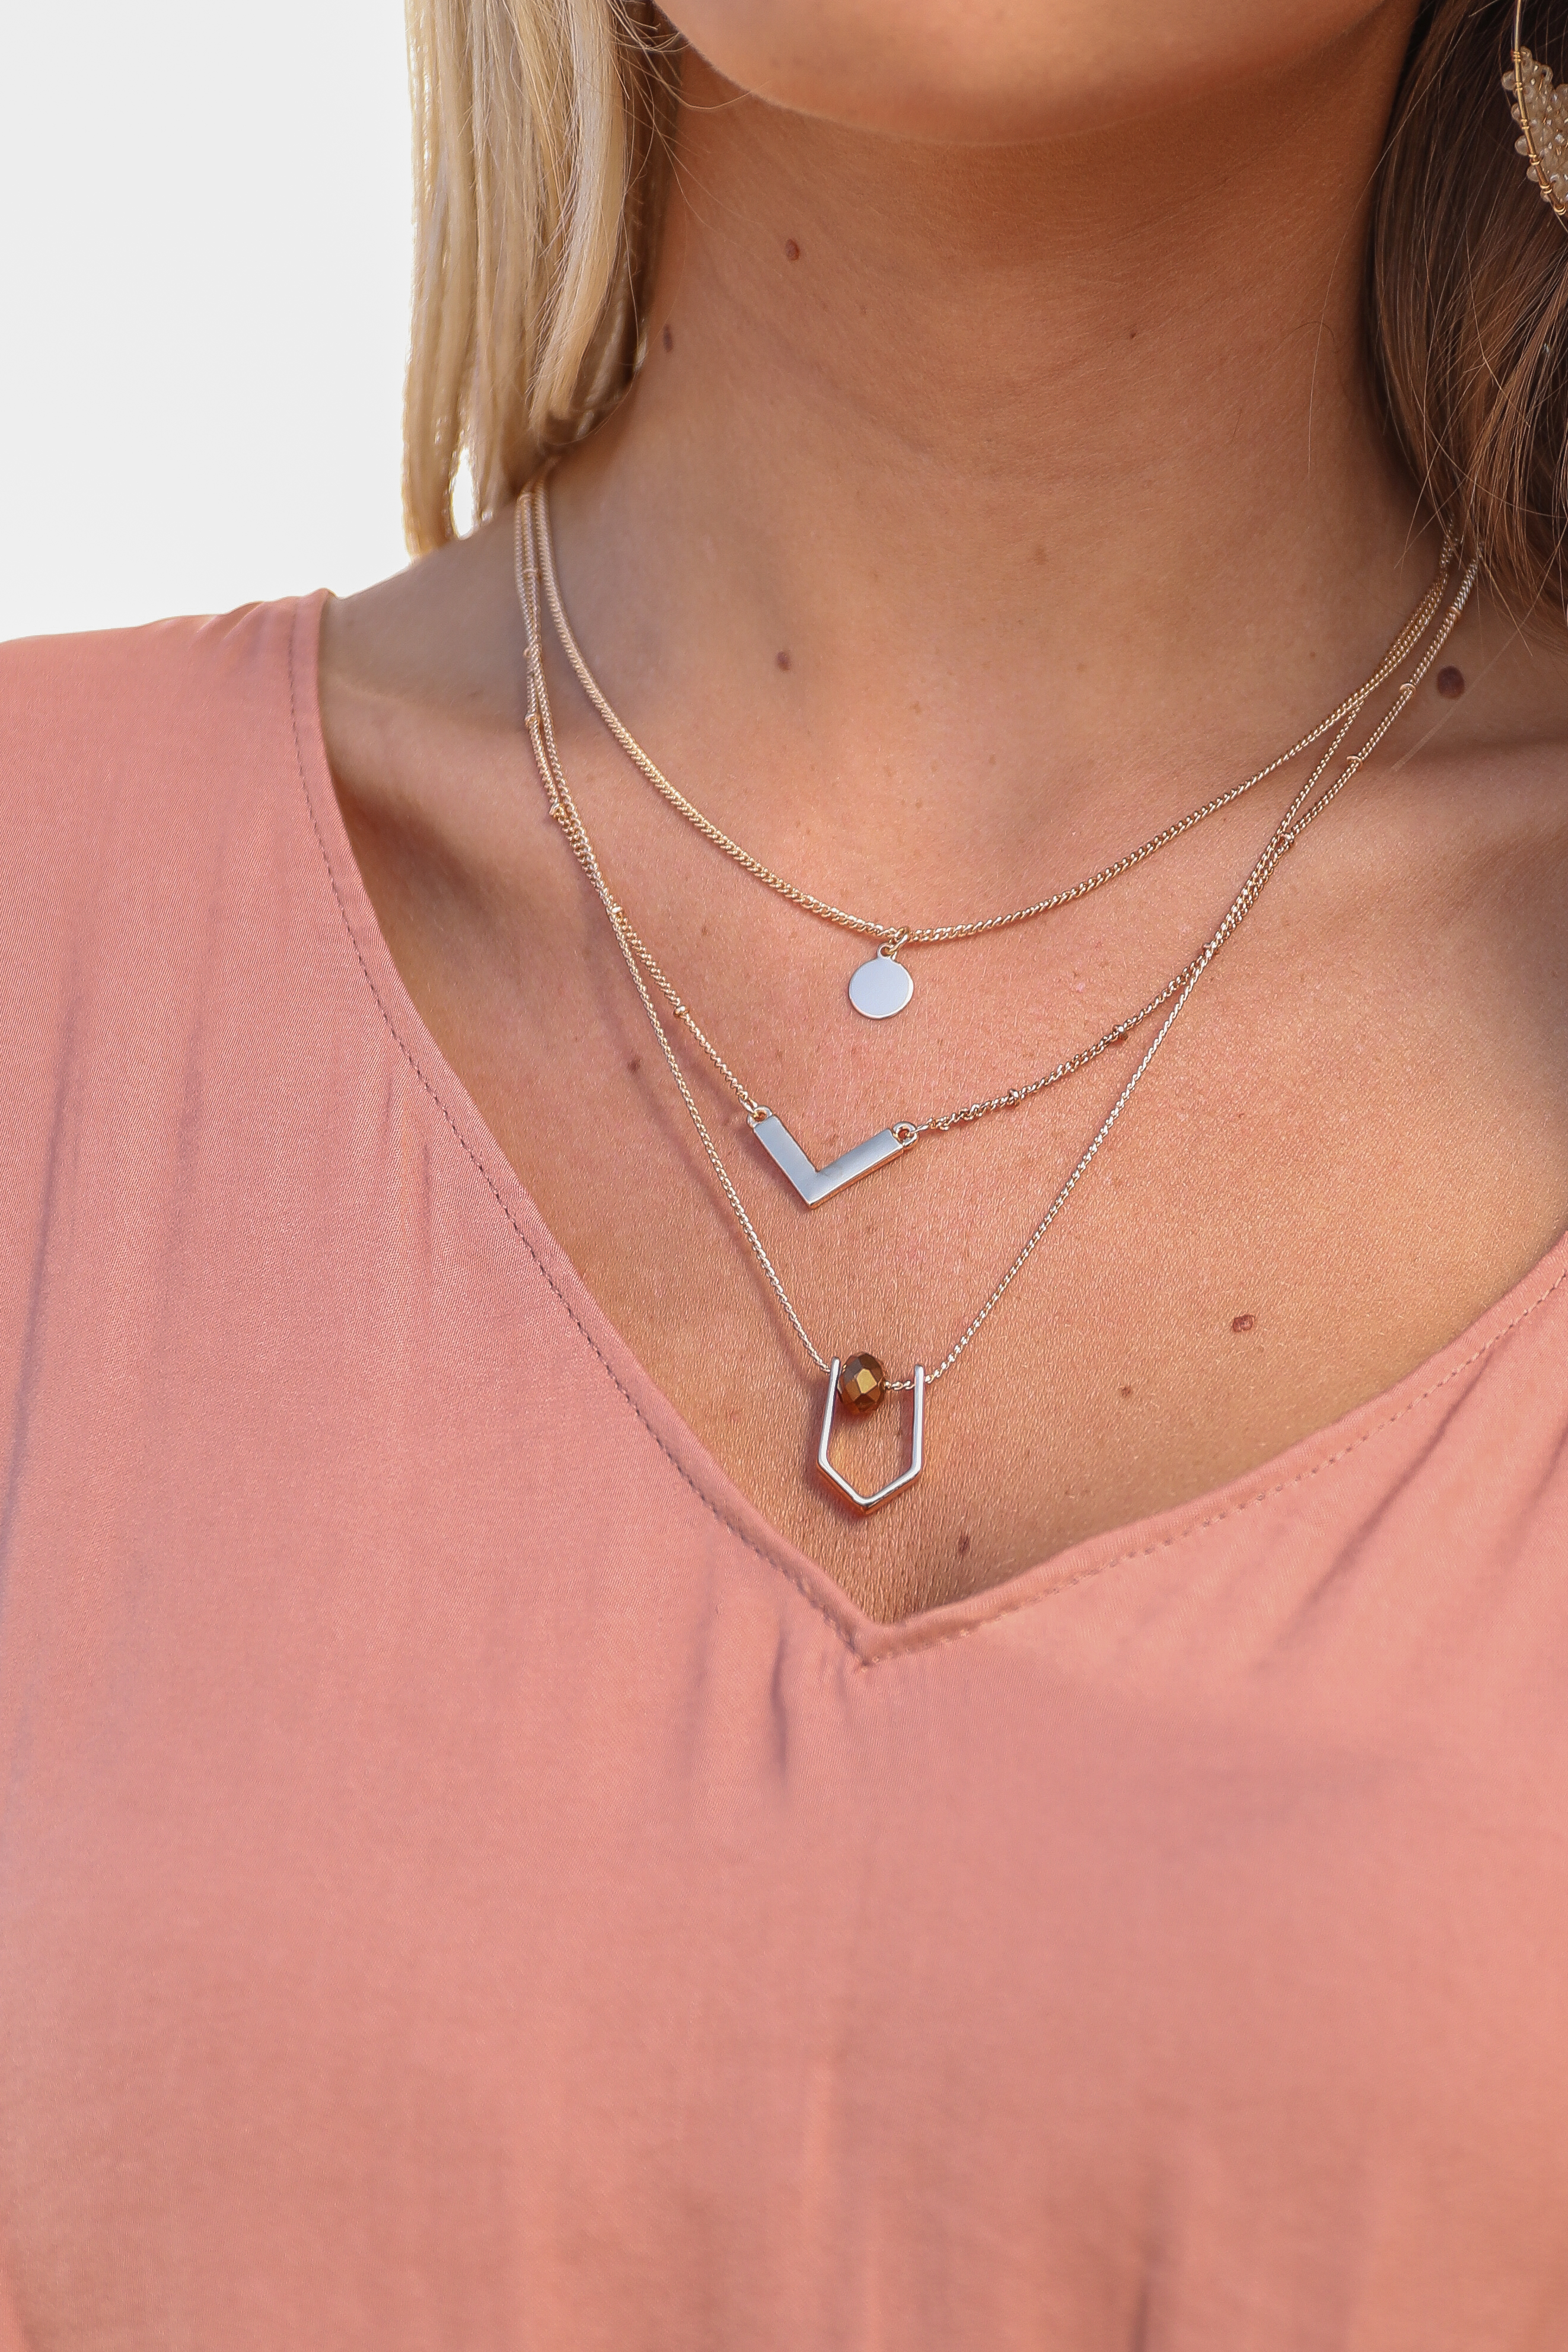 Antique Gold Layered Necklace with Geometric Pendant Details